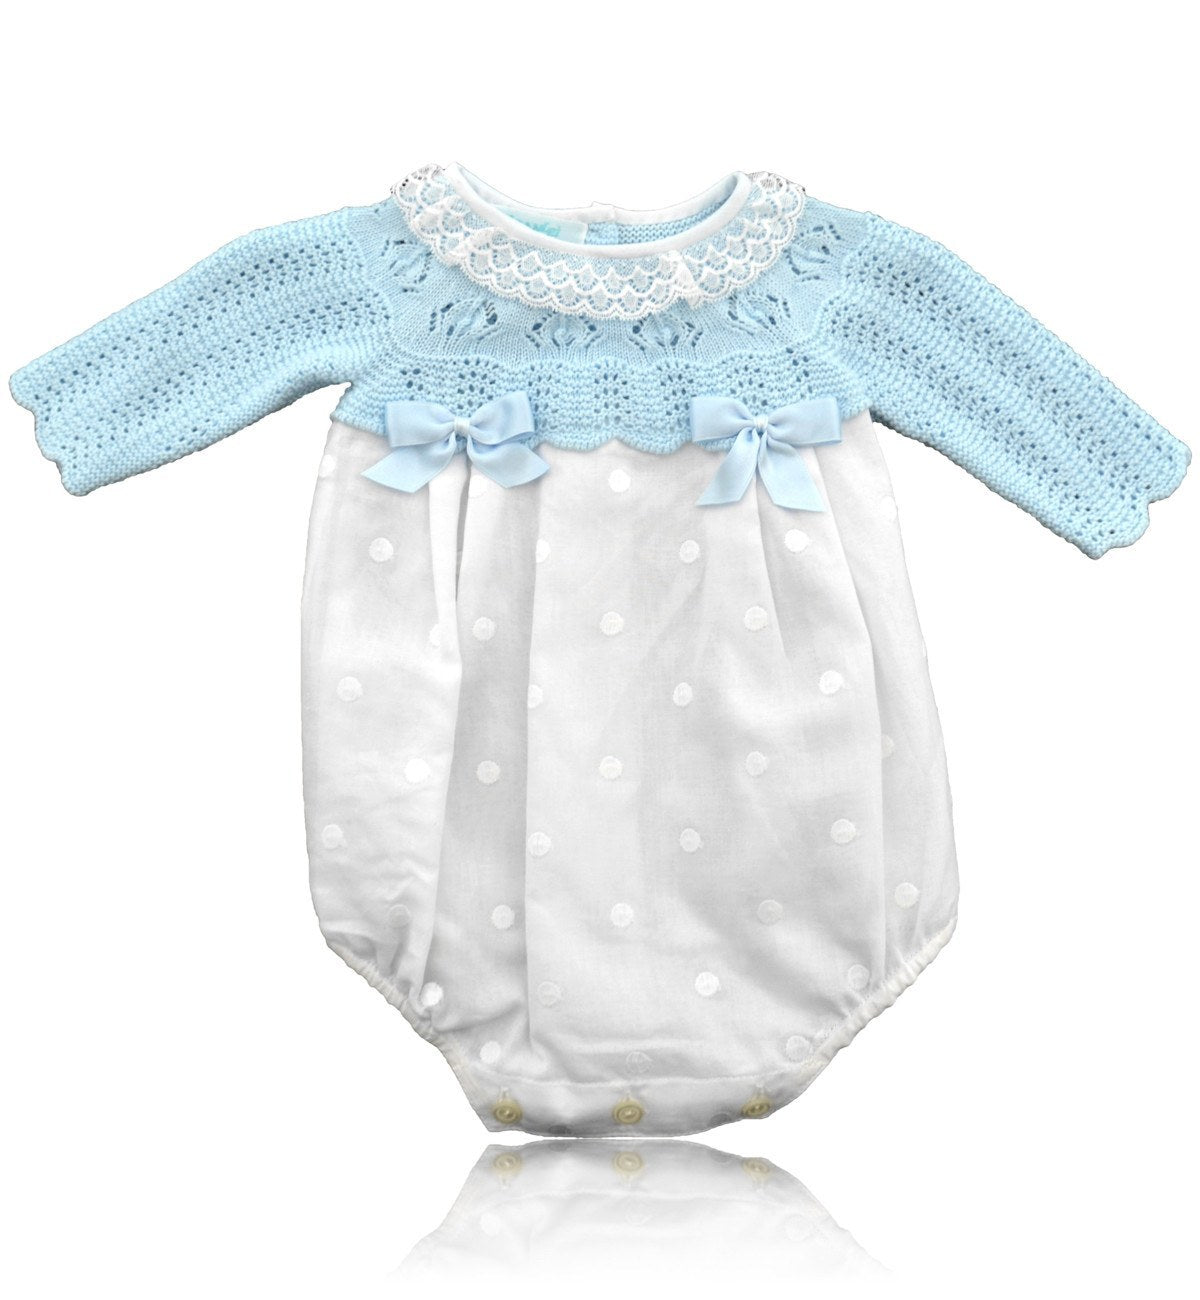 Spanish baby clothes | baby Rompers | Baby blue and white romper suit |babymaC  - 1